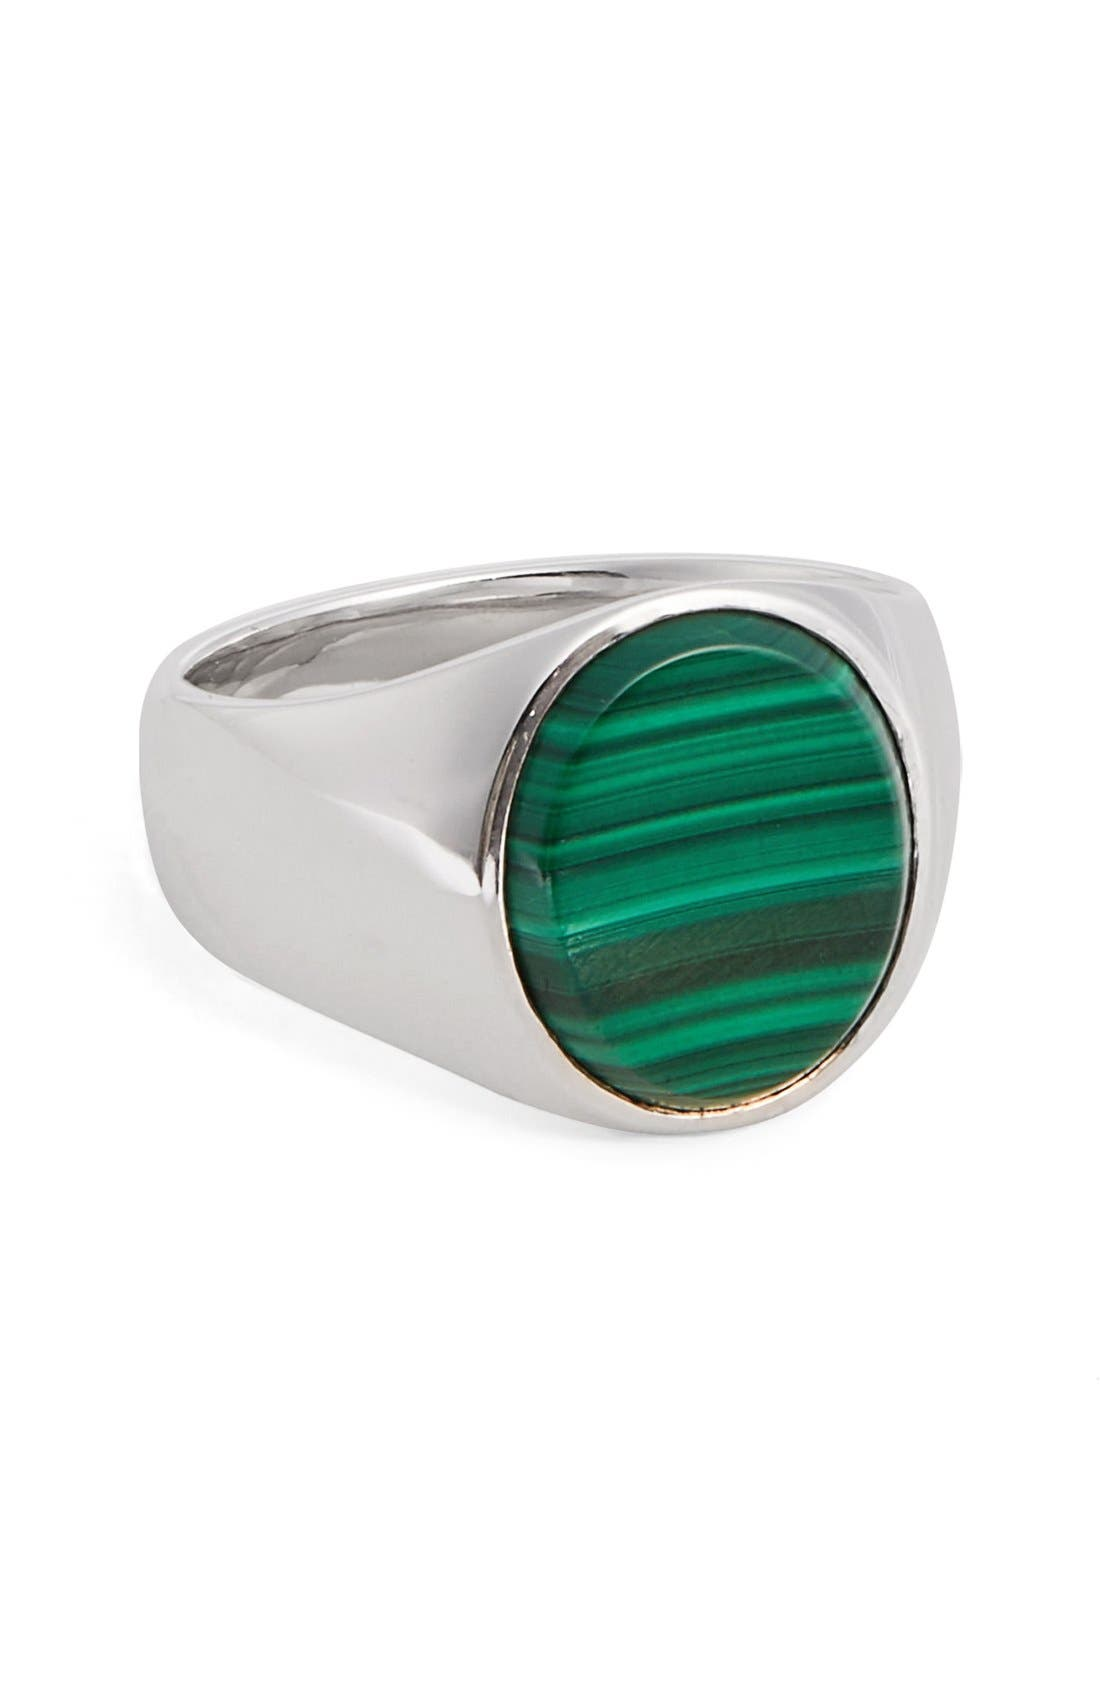 'Patriot Collection' Oval Malachite Signet Ring,                         Main,                         color, Silver